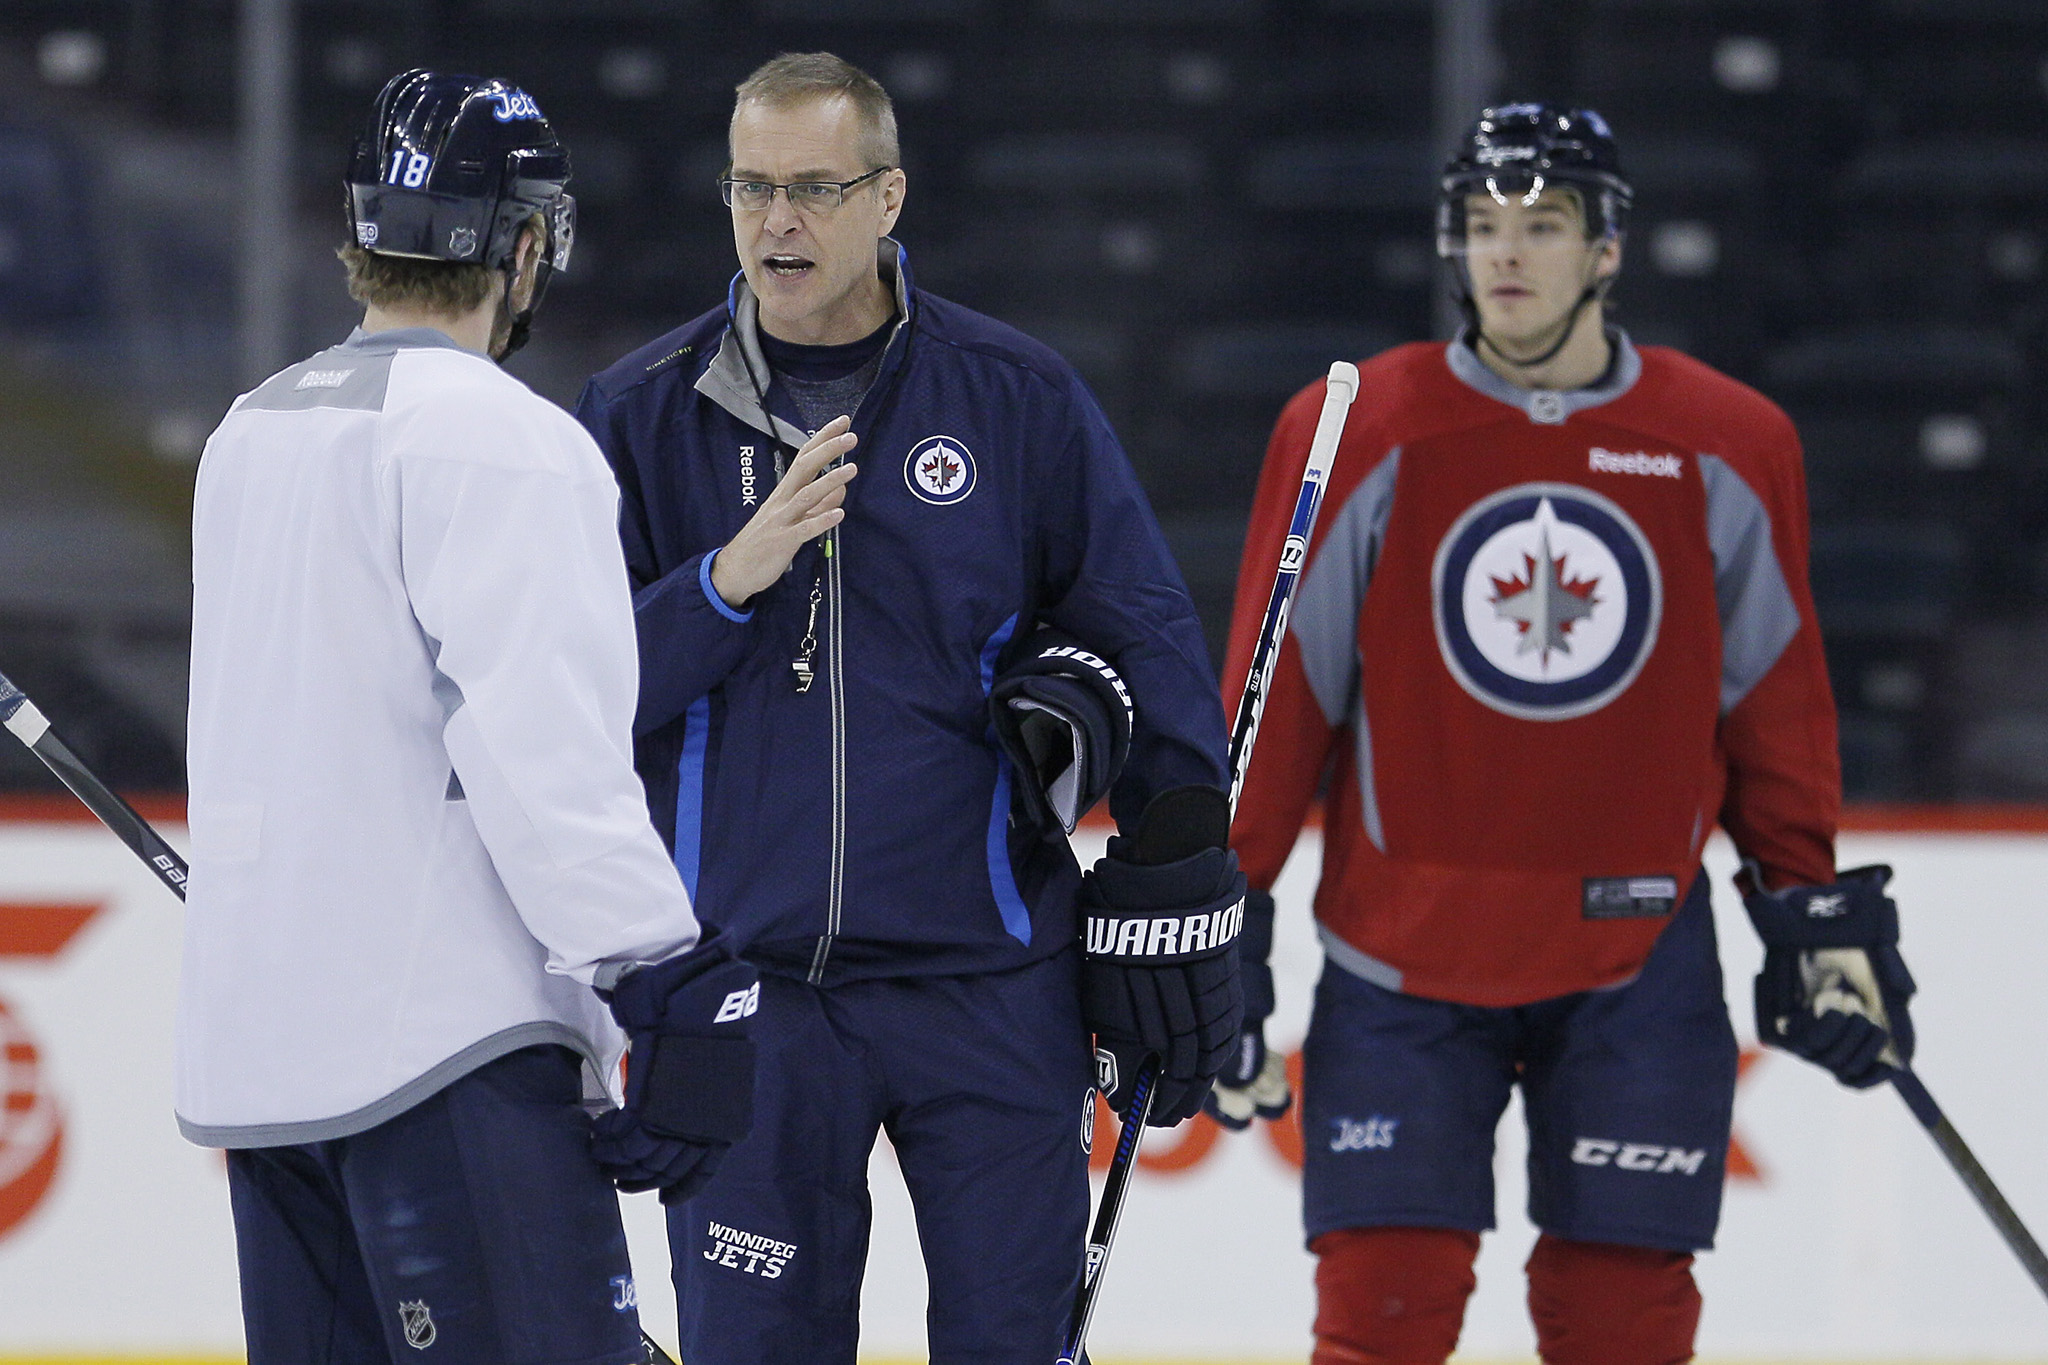 New head coach Paul Maurice talks with Bryan Little during his first practice.